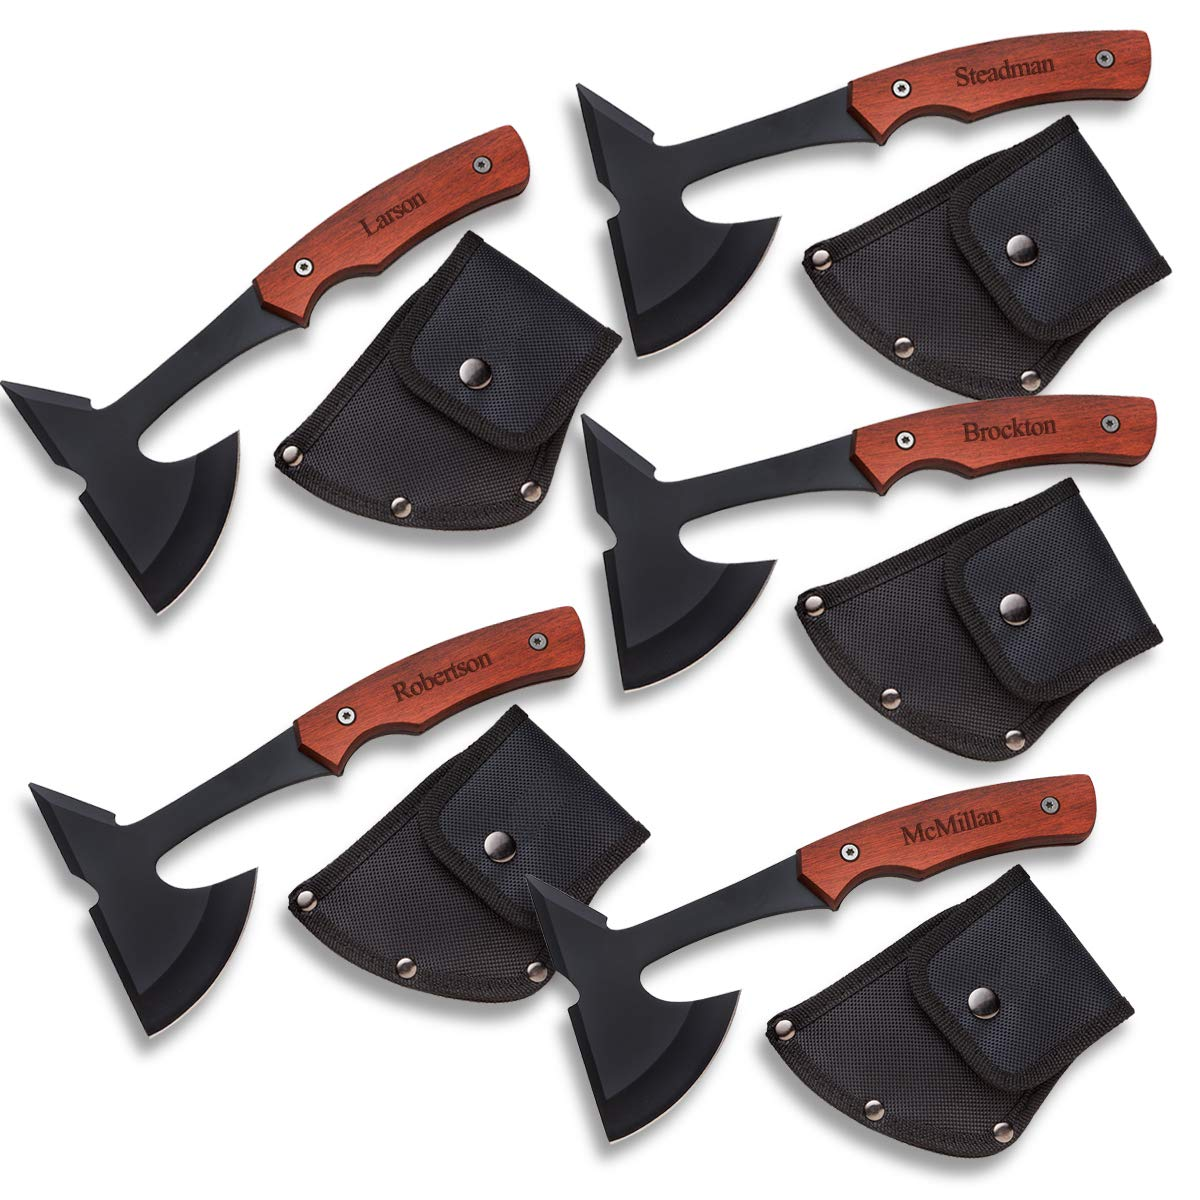 Groomsmen Gifts Set of 5 Personalized Axes - 1 Line by A Gift Personalized (Image #1)